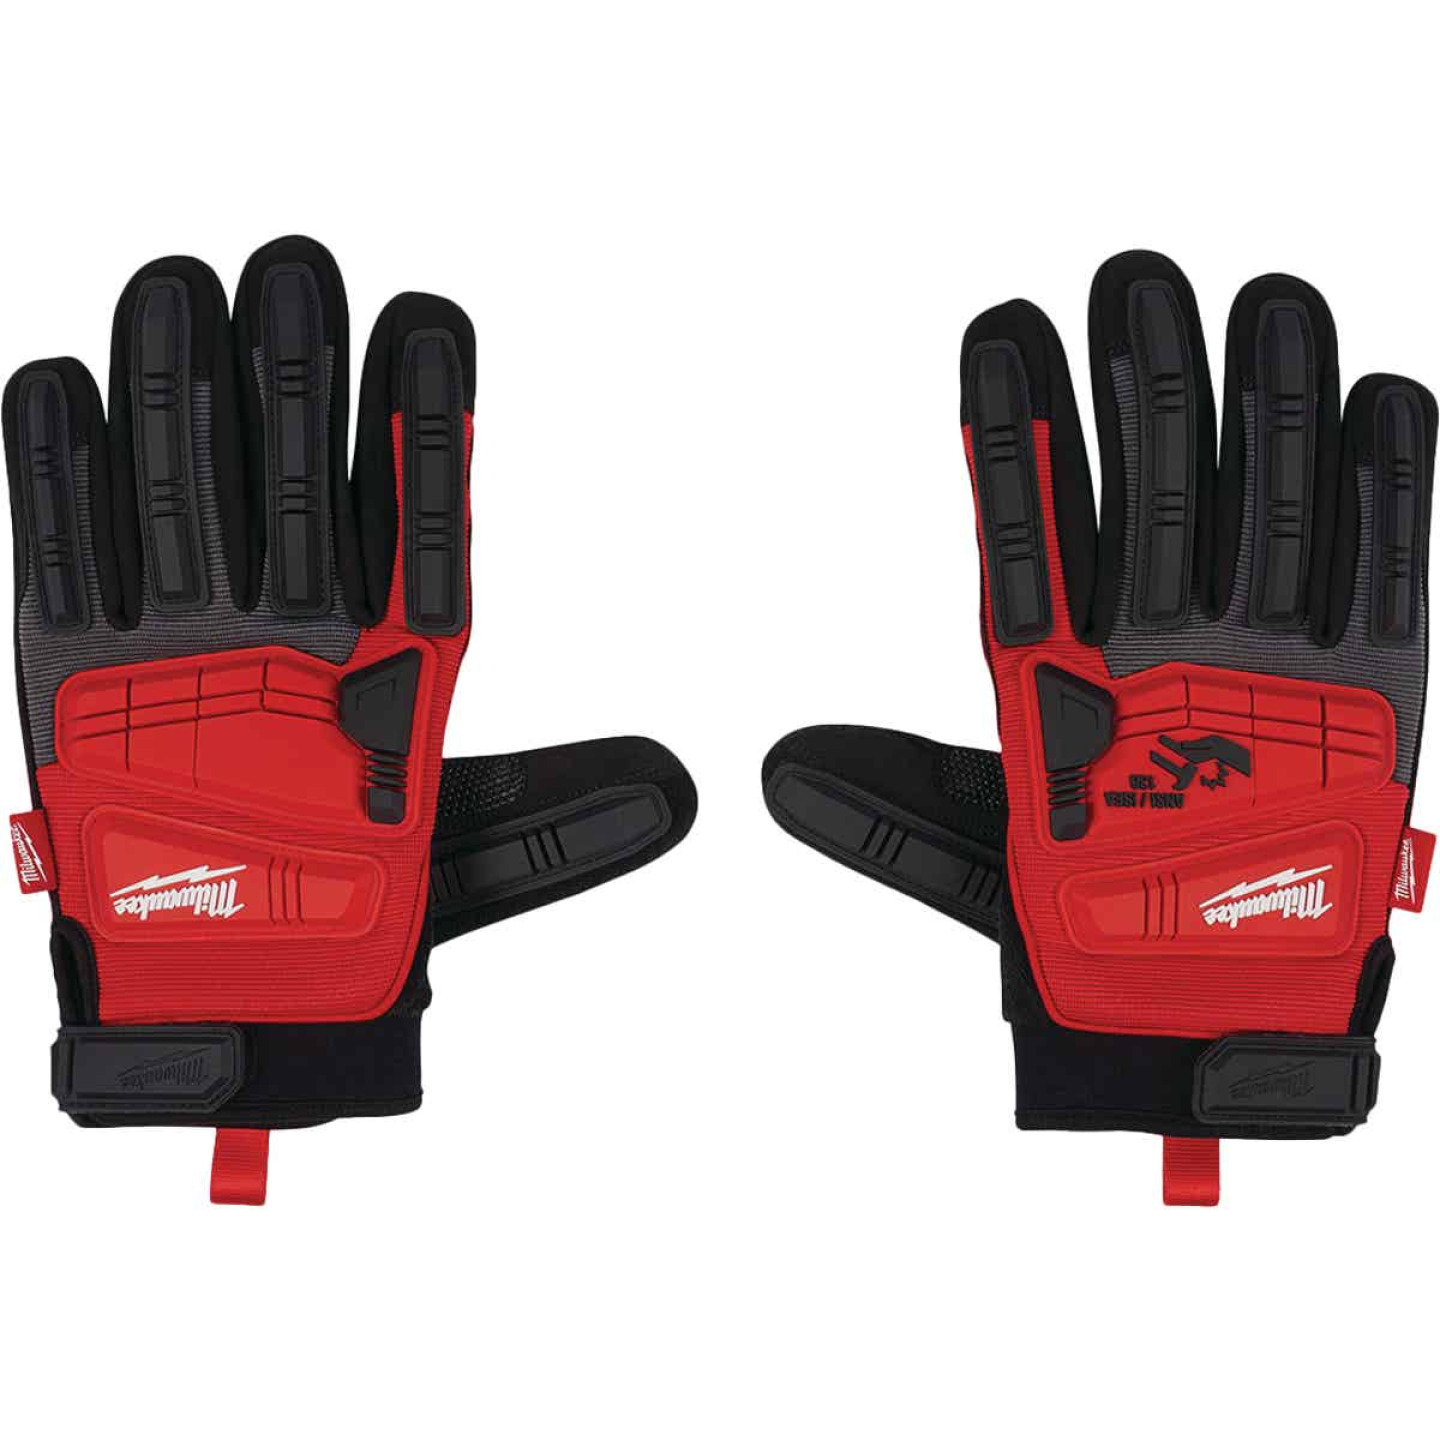 Milwaukee Men's XL Synthetic Leather Impact Demolition Glove Image 2